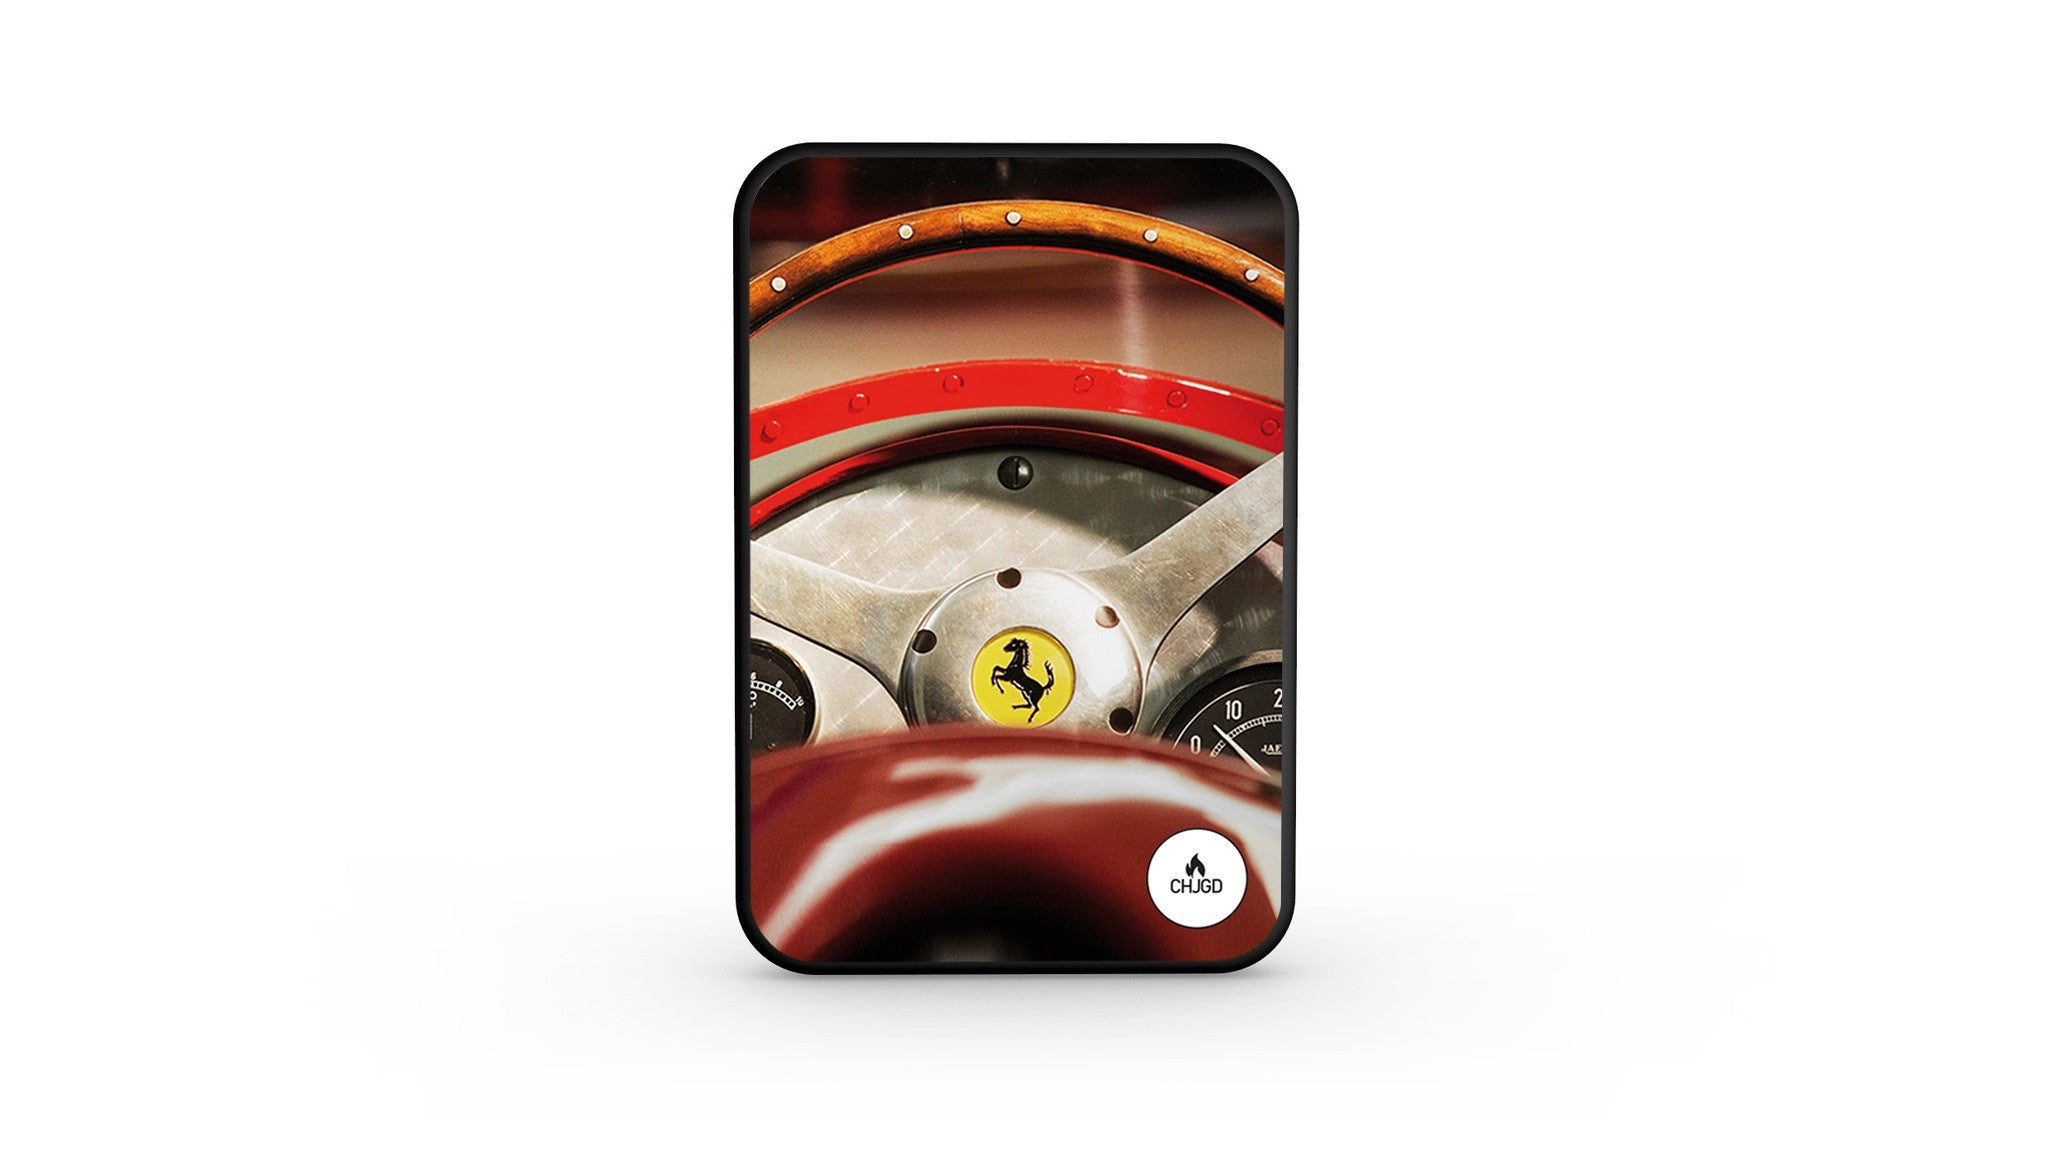 CHJGD UltraCompact Mini 5000 mAh Power Bank (Ferrari Design)